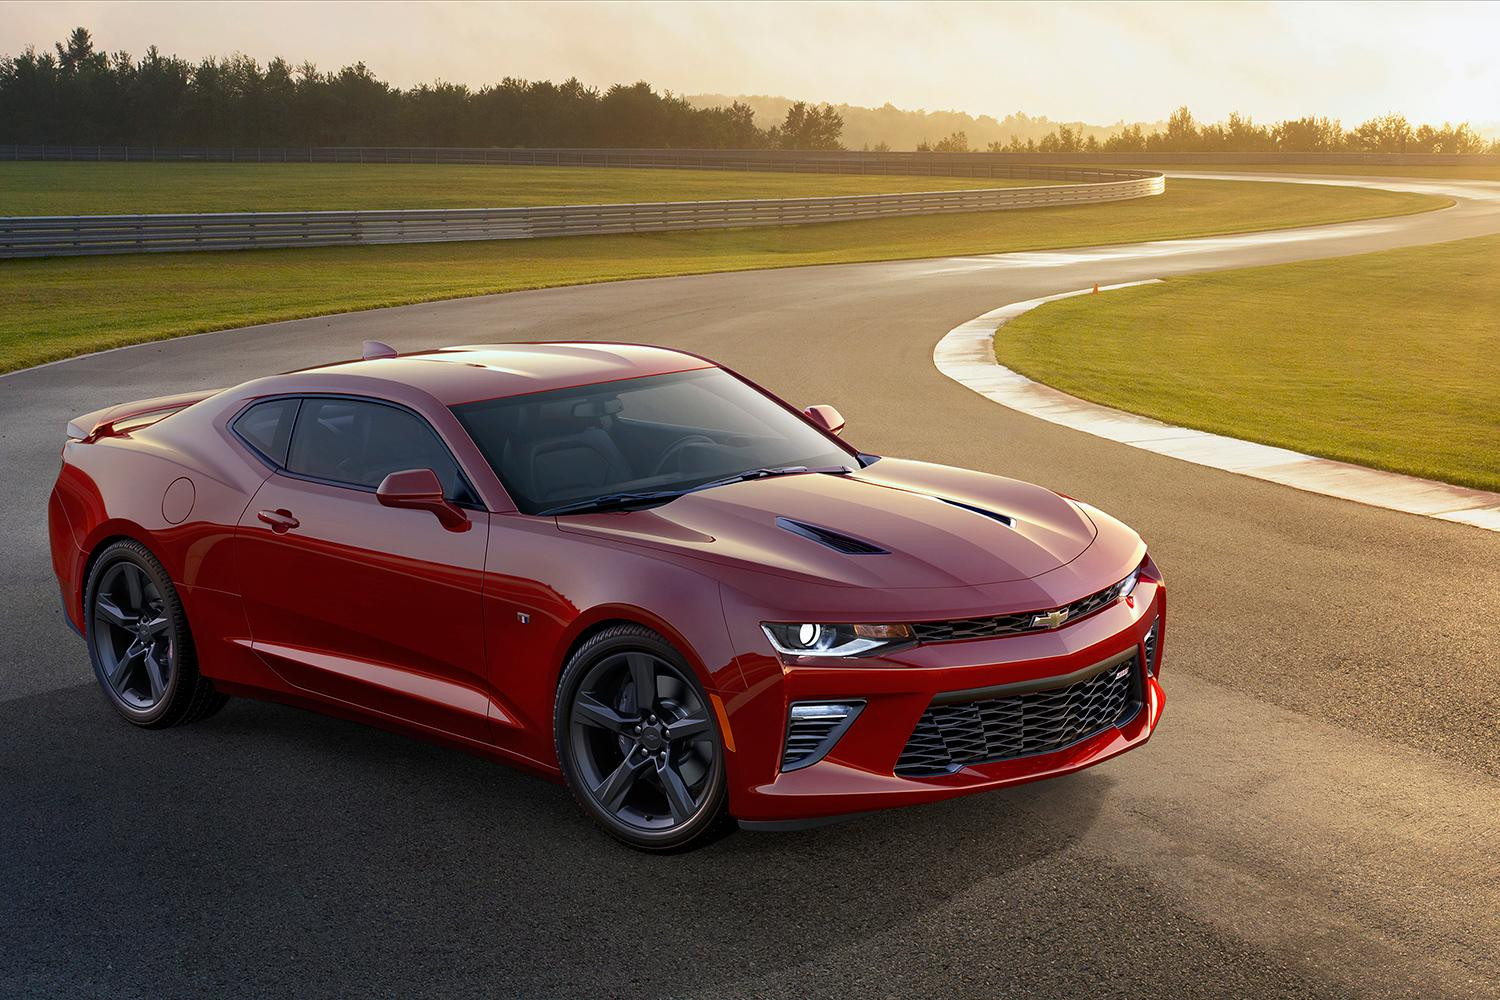 2018 Chevrolet Camaro SS photo - 1